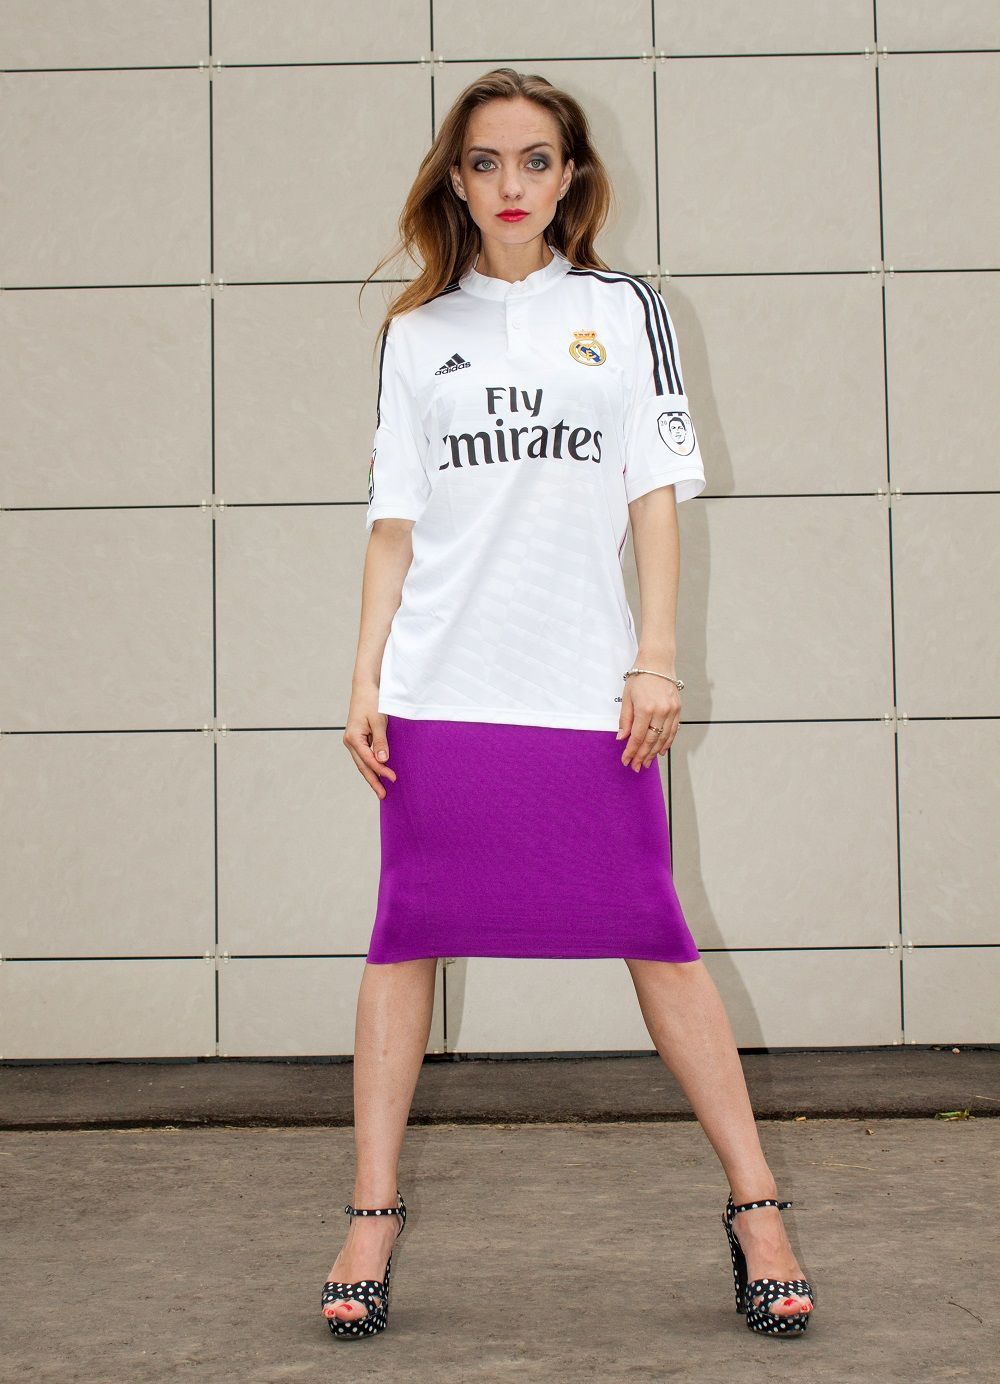 reputable site c960e 6ea24 Real Madrid girl plain white jersey and the colorful purple ...